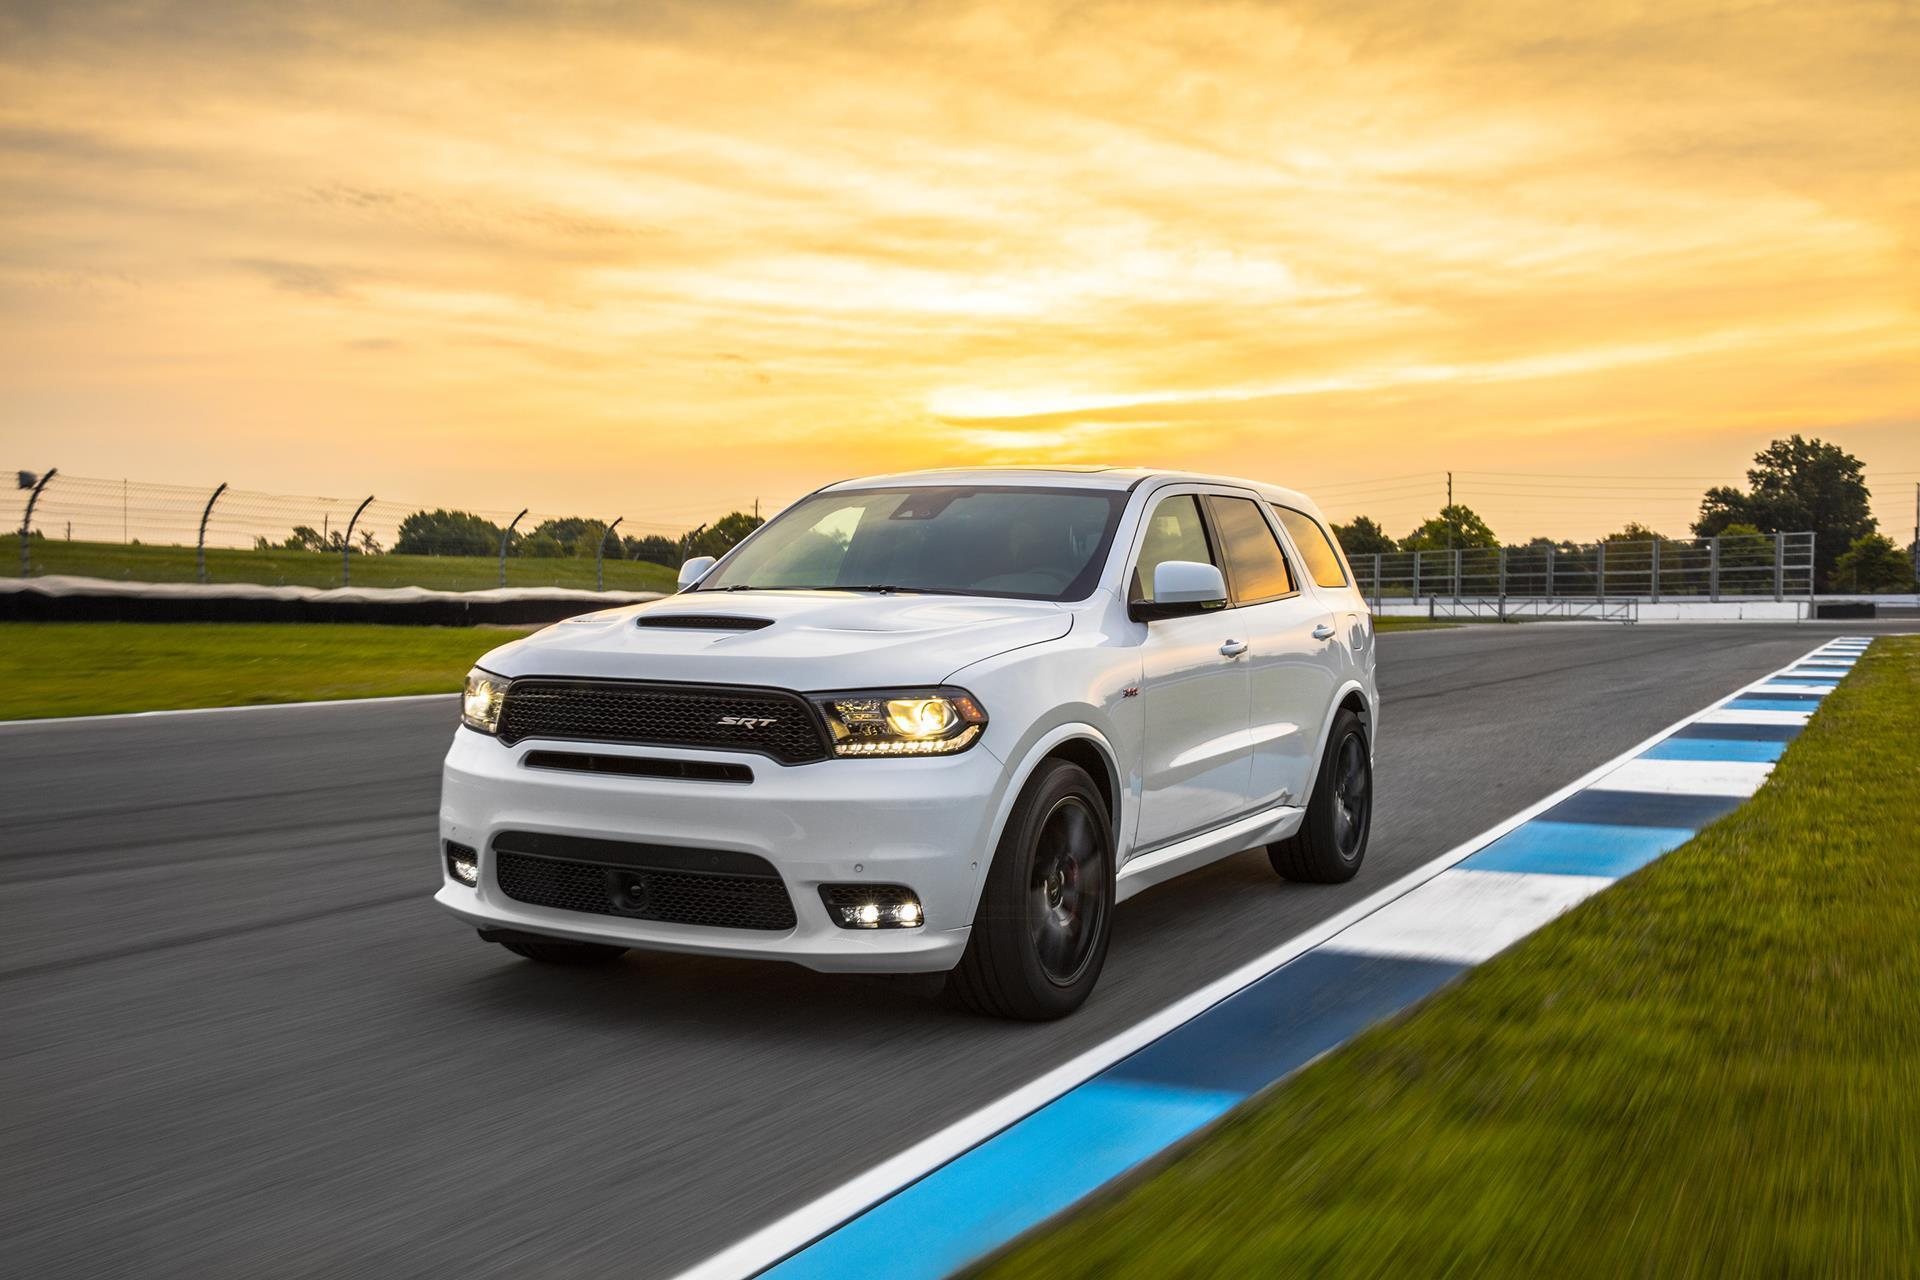 2019 Dodge Durango Srt Wallpaper And Image Gallery Com